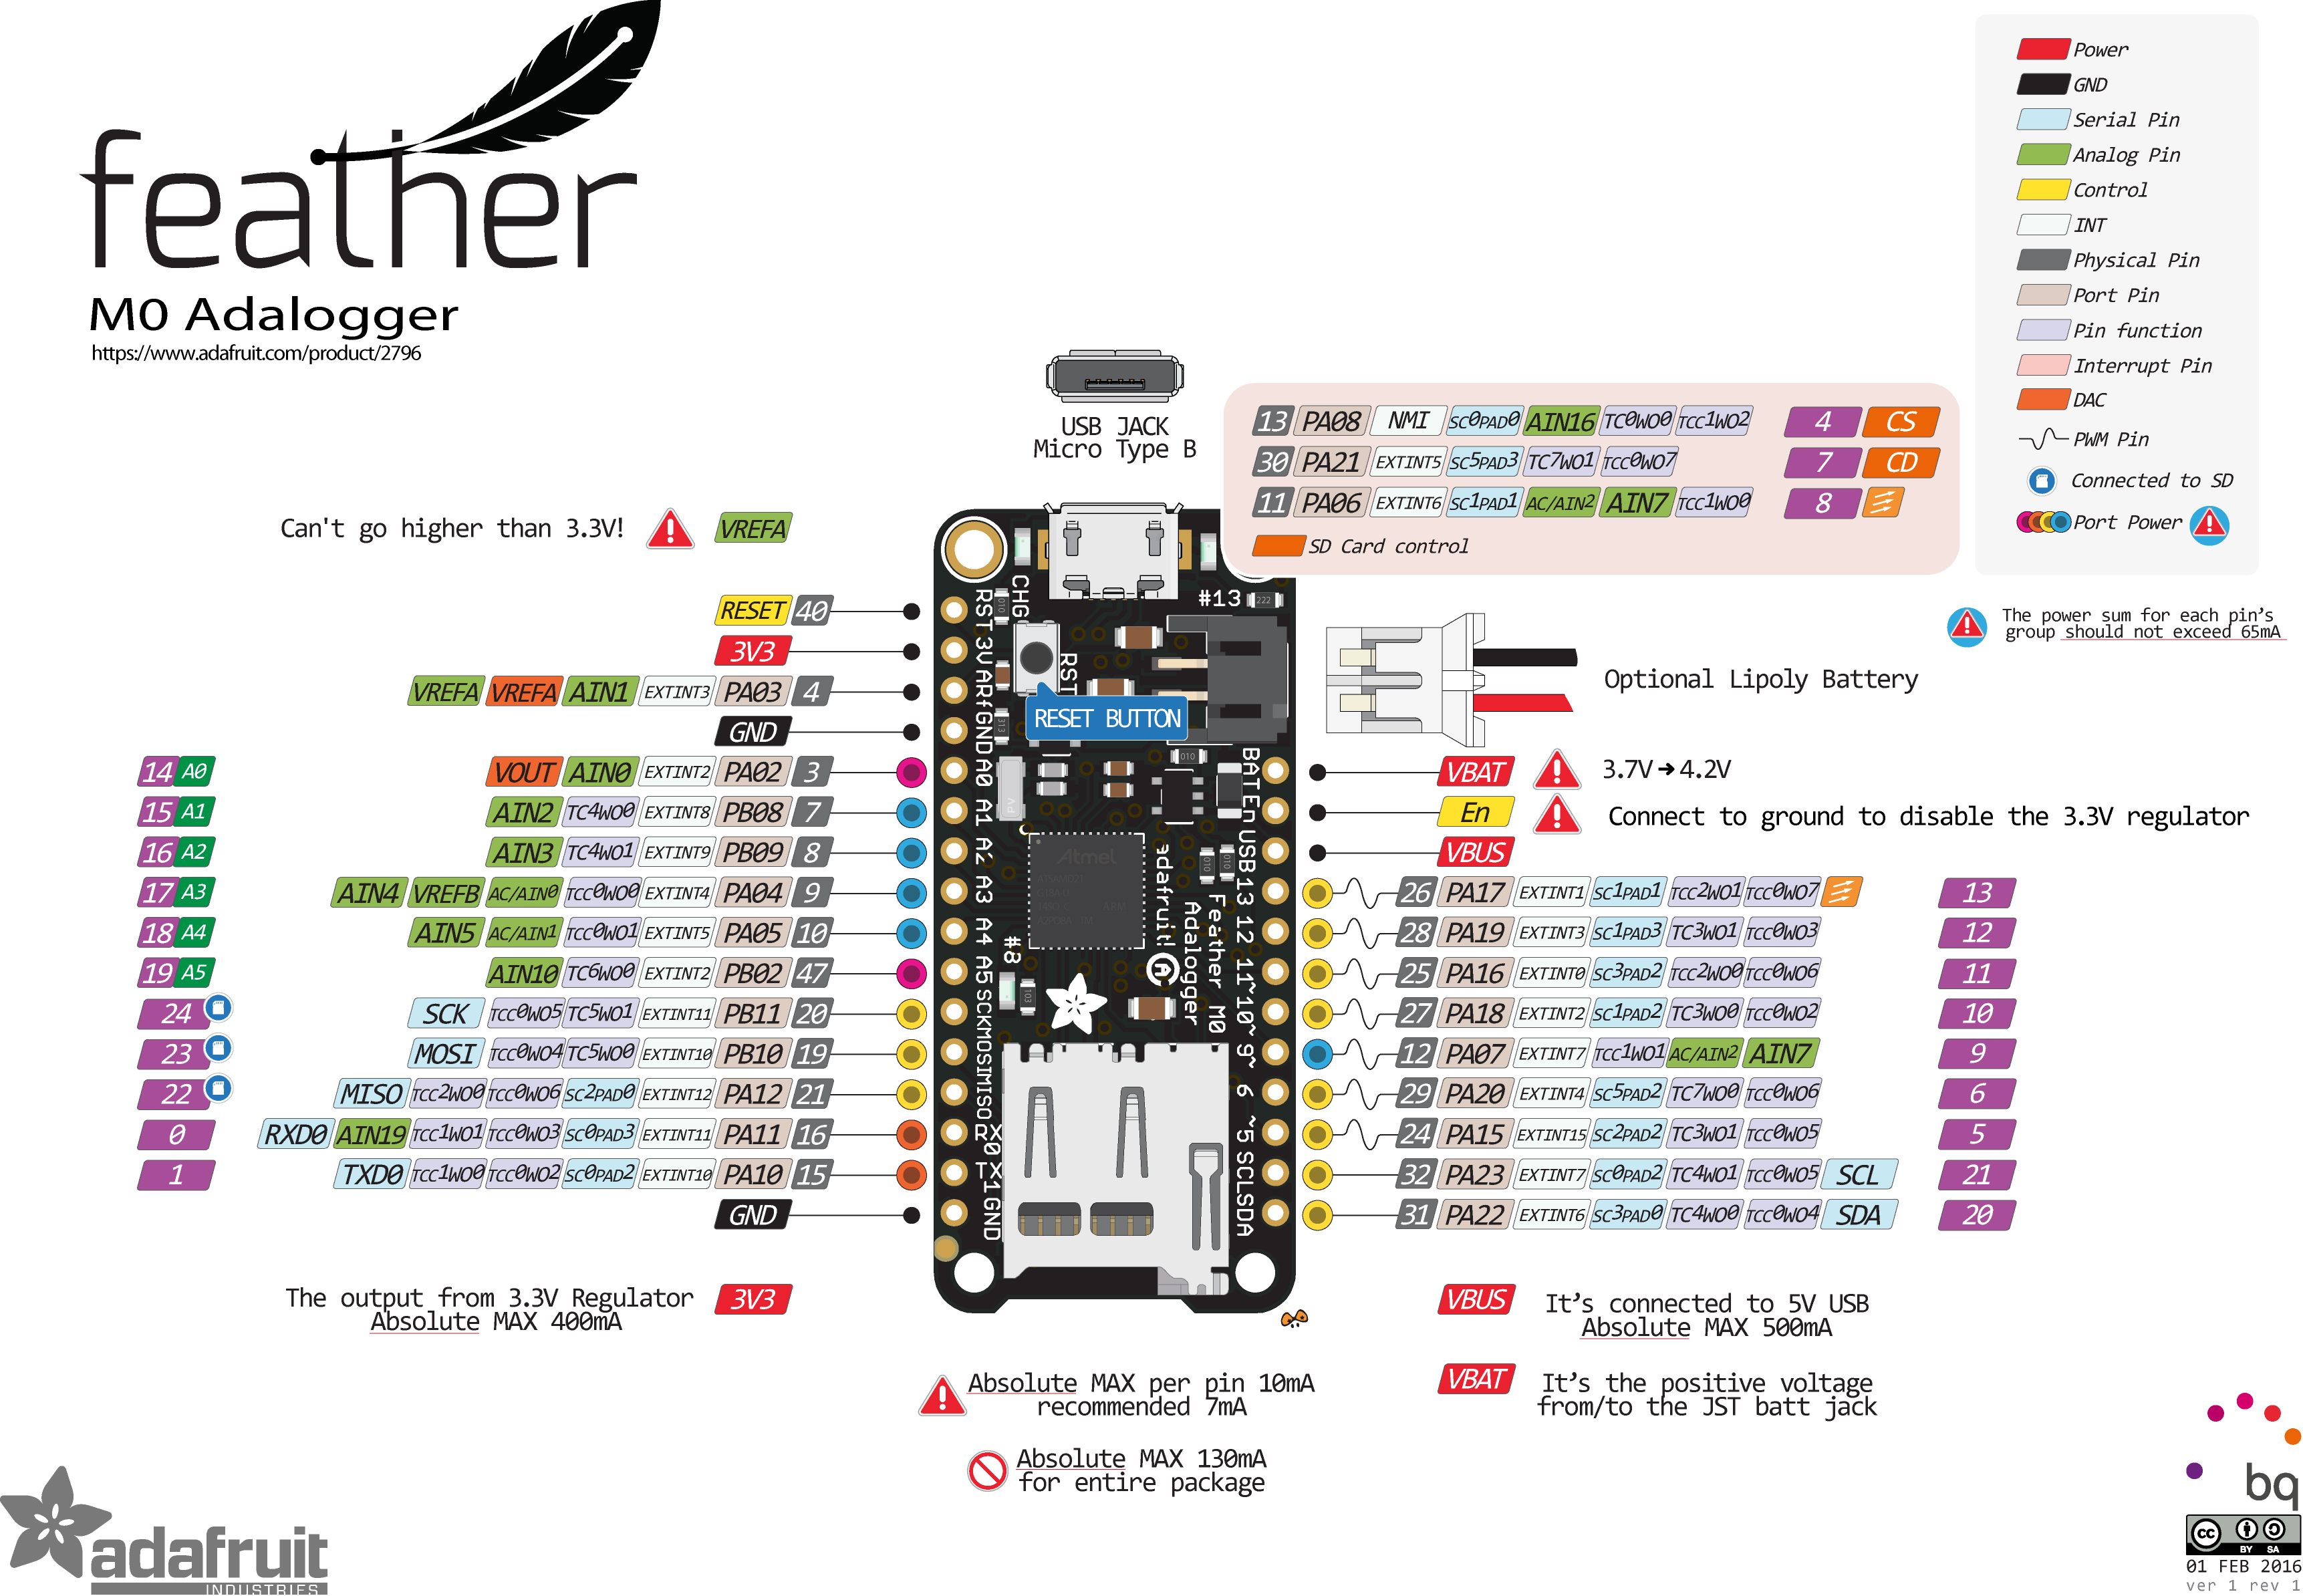 adafruit_products_2796_pinout_v1_0.png